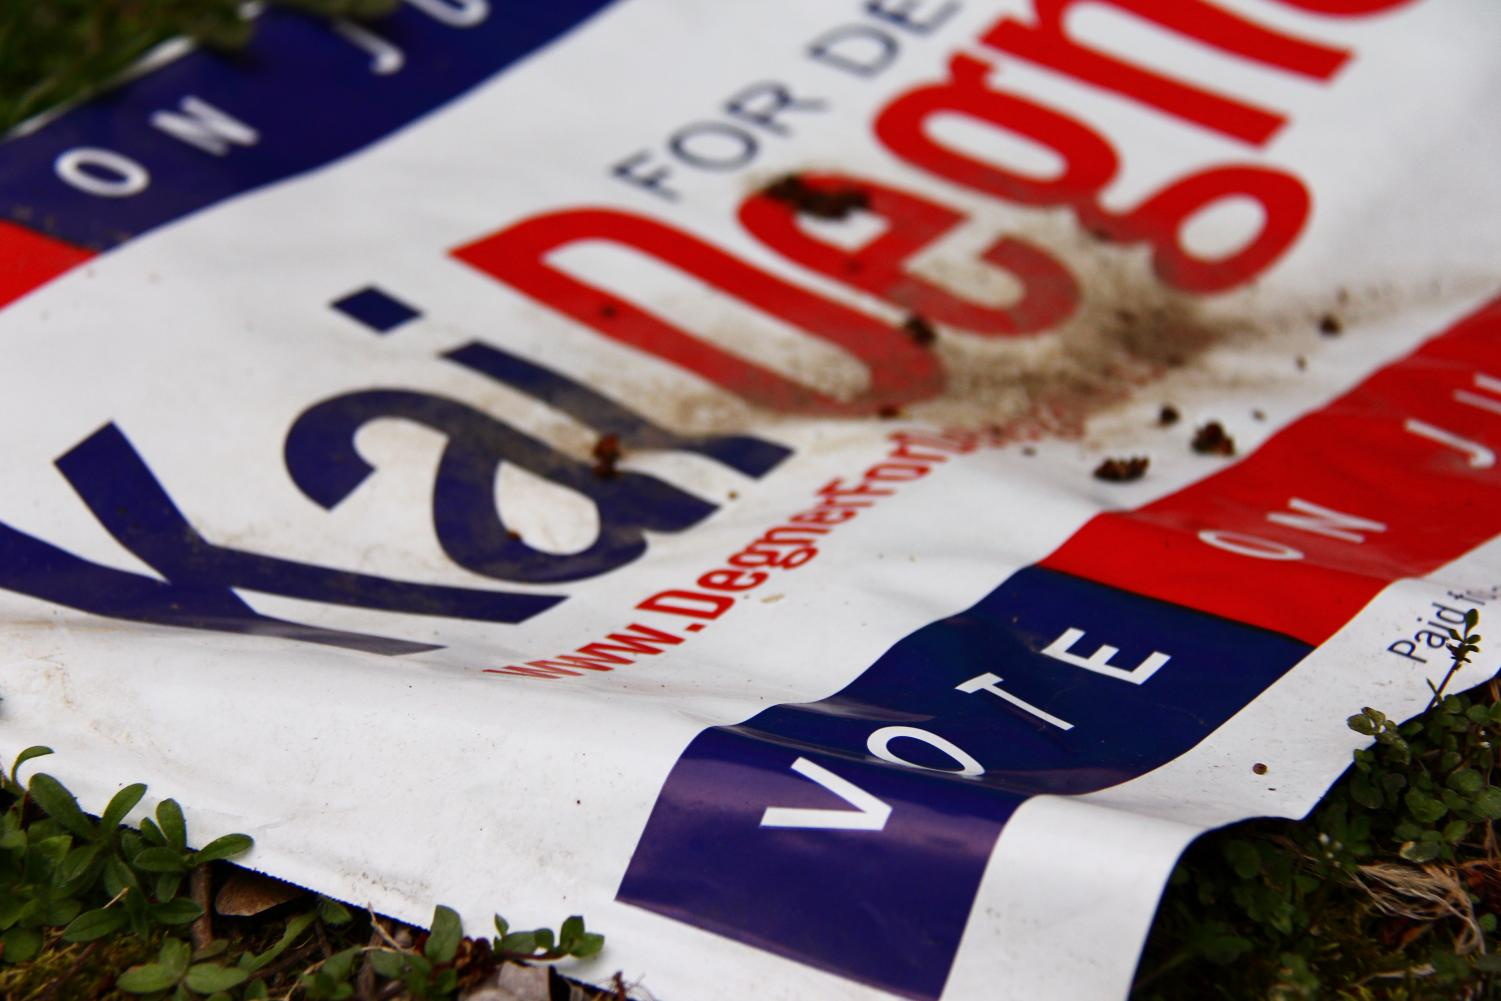 A large promotional banner encourages voters to partake in the elections by voting for their candidate.